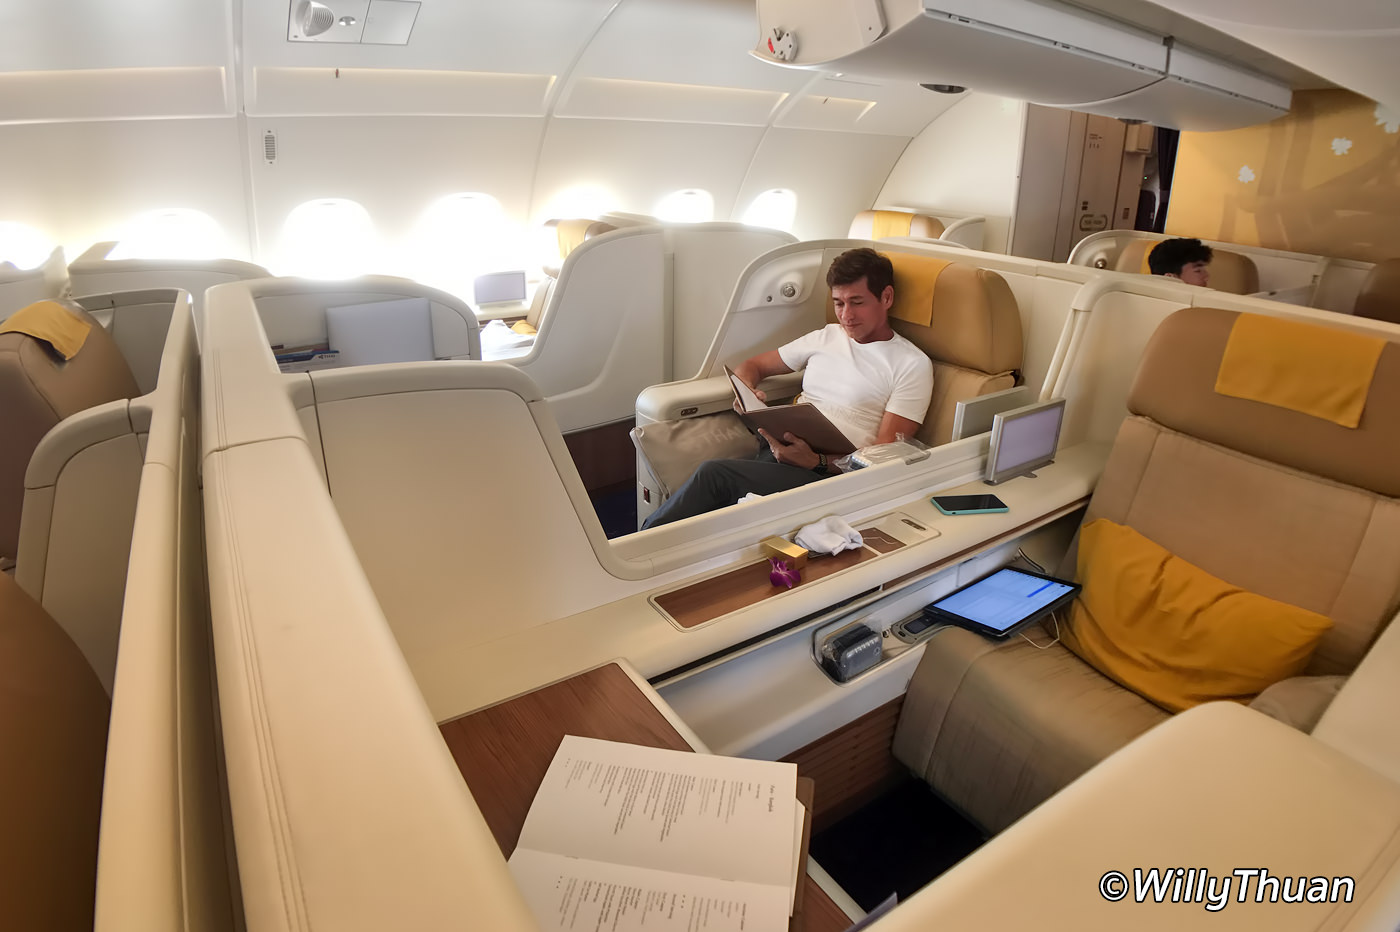 Thai Airways First Class – 1st Class on A380